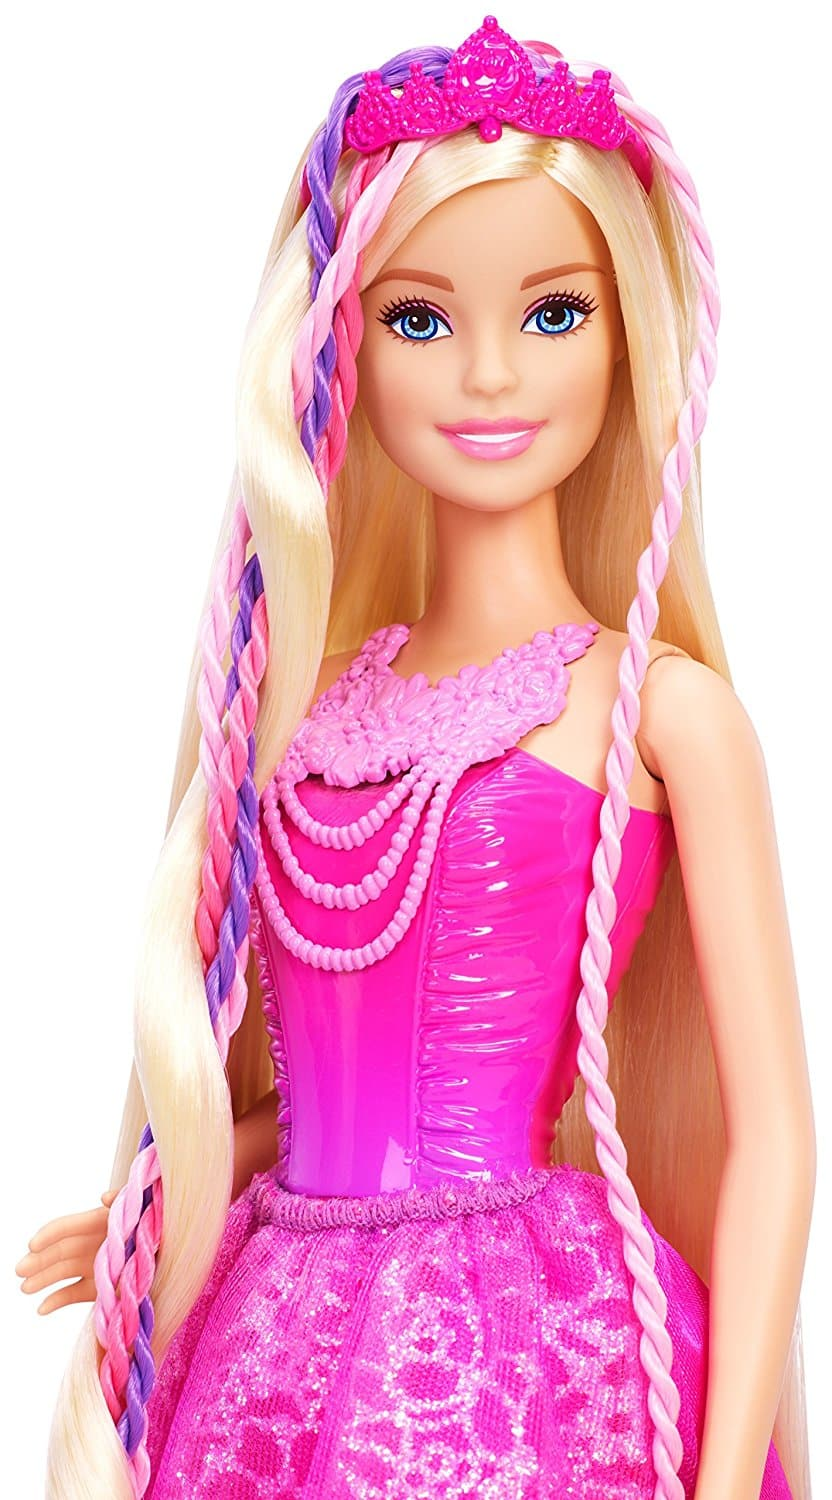 Pin on Barbie Dolls & Related Items/Dolls